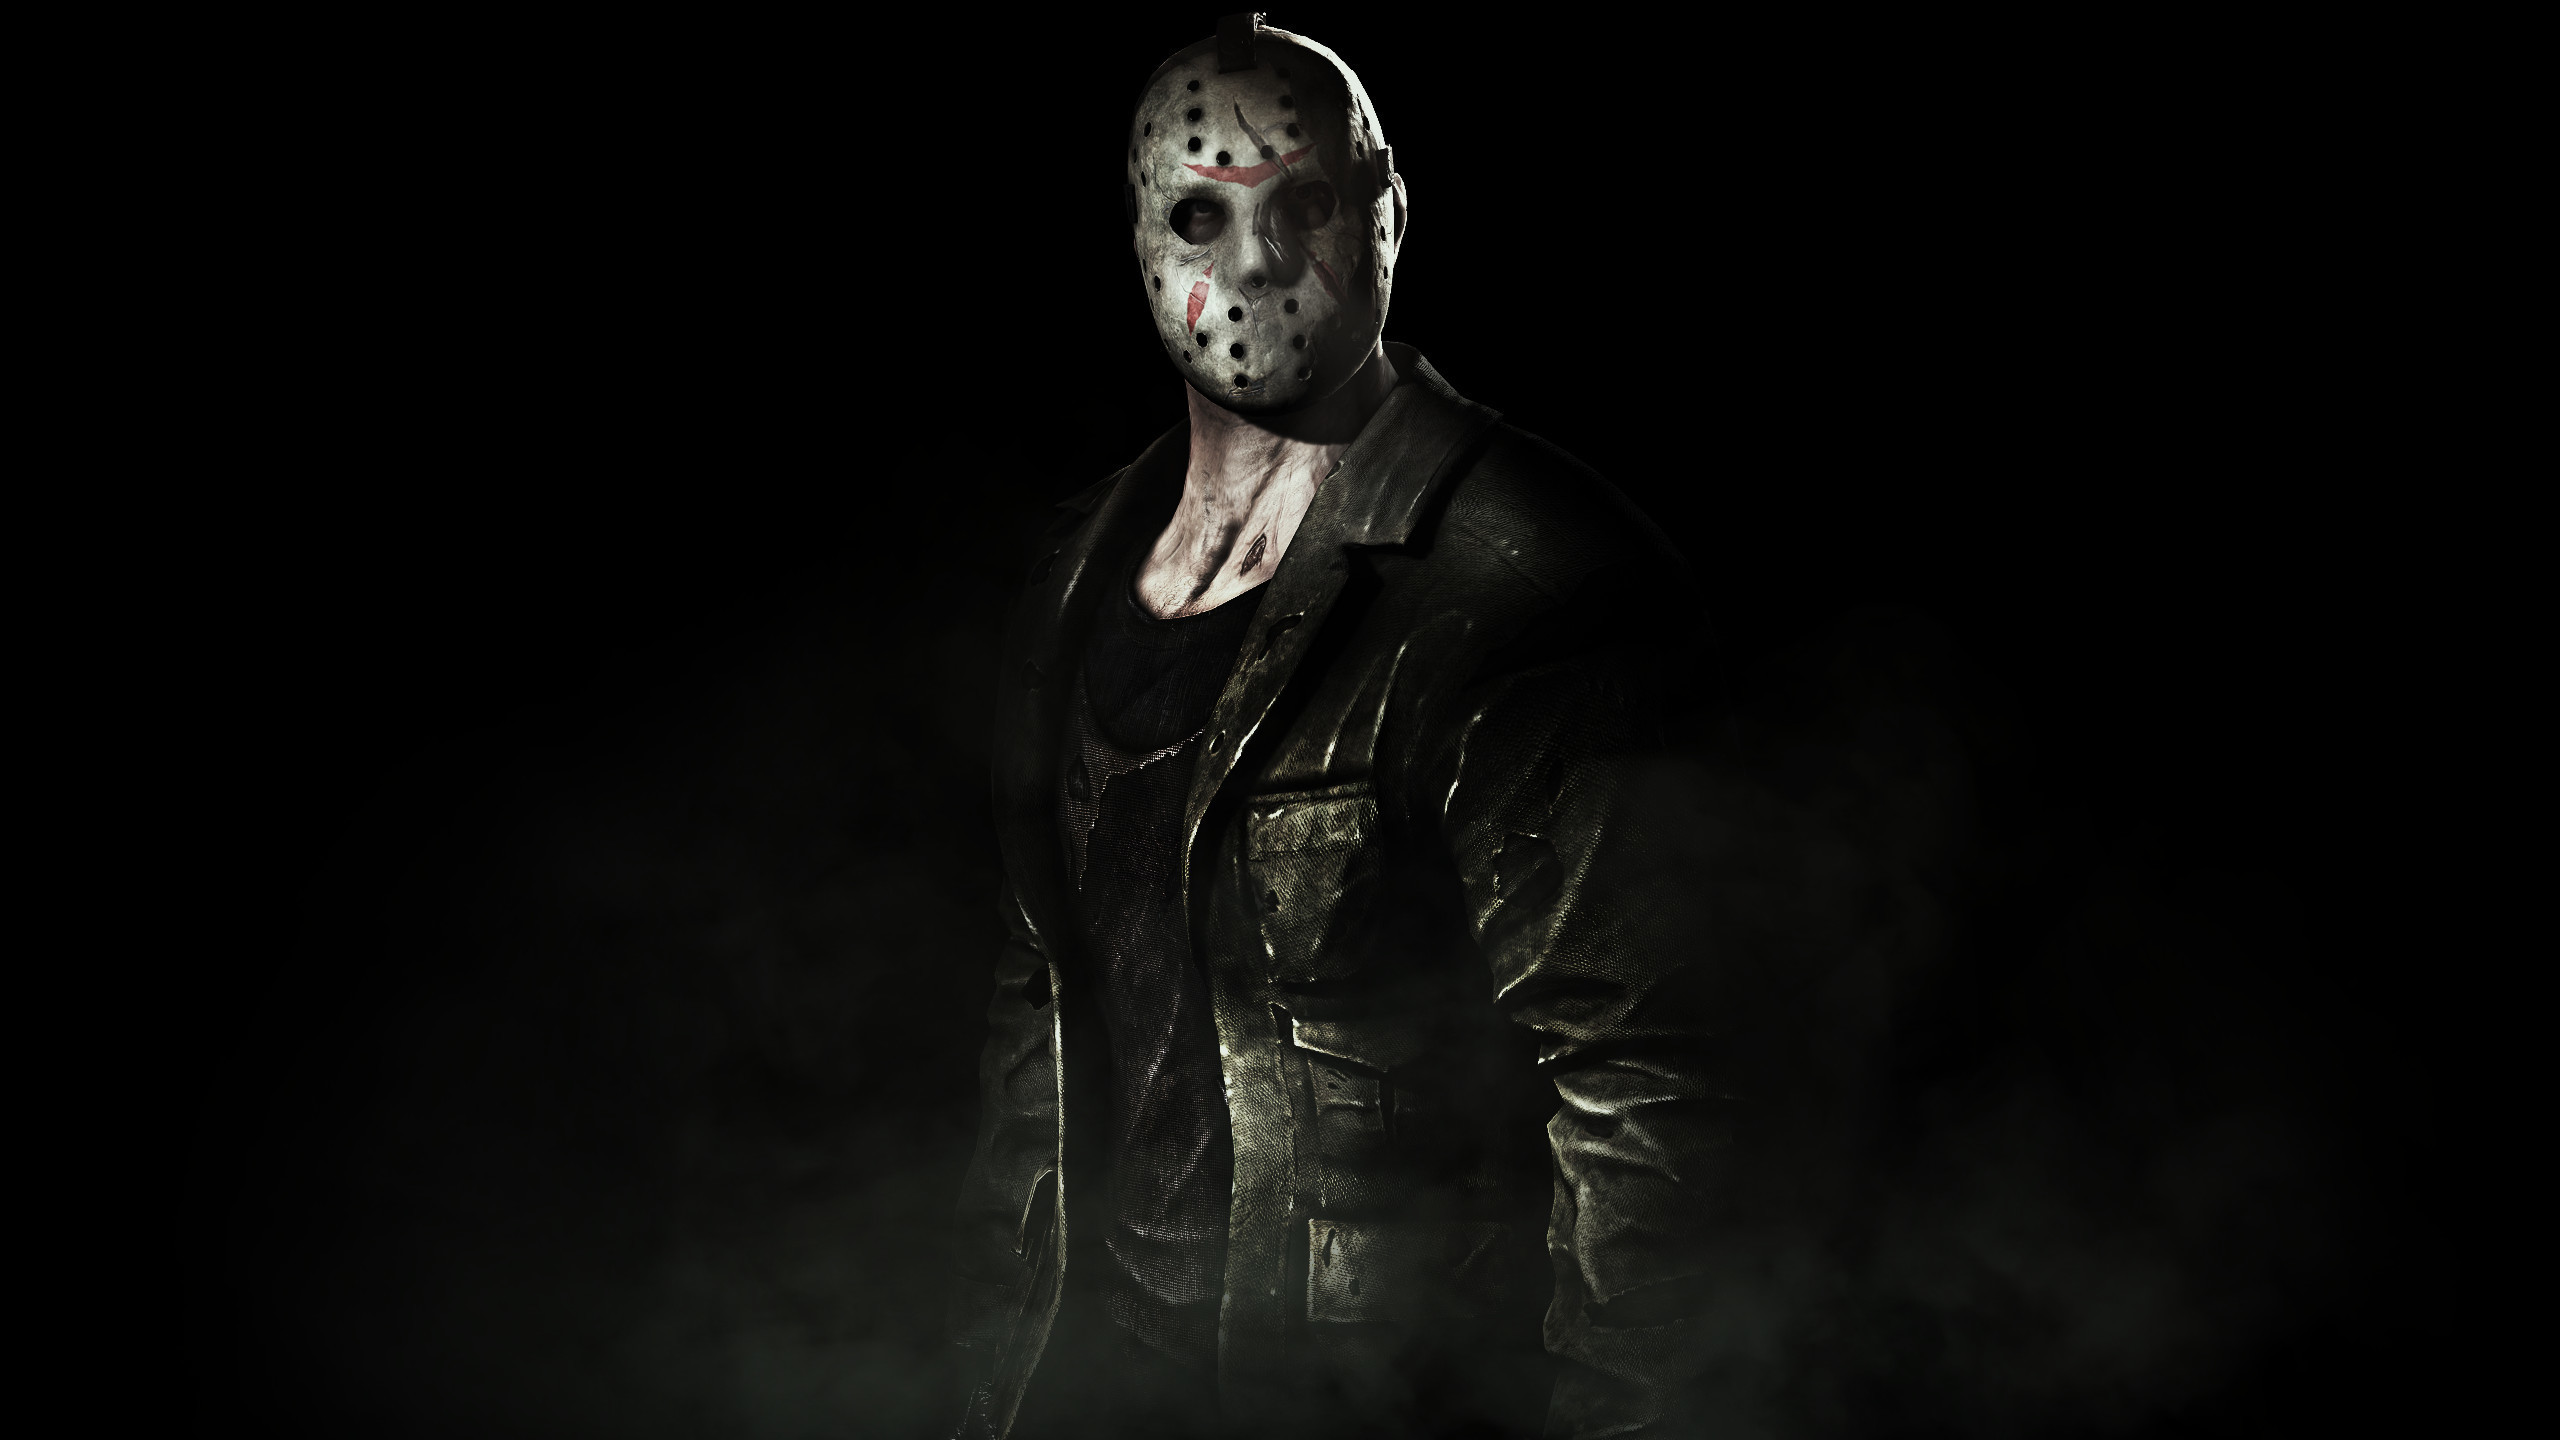 2560x1440 2048x1284 Video Game - Friday the 13th: The Game Wallpaper